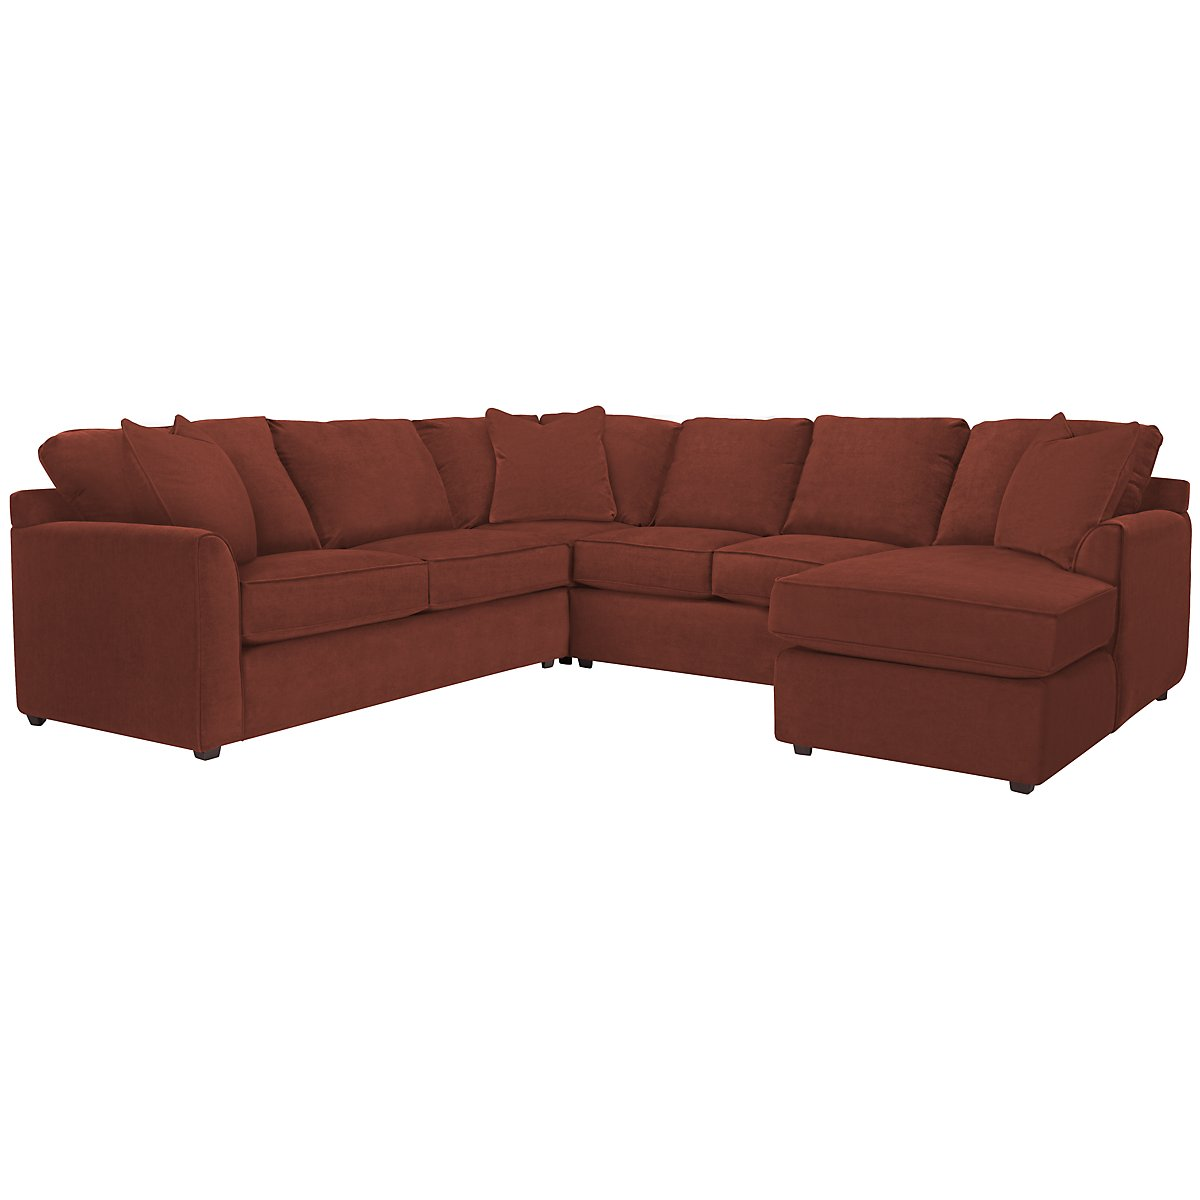 Express3 Red Microfiber Small Right Chaise Sectional